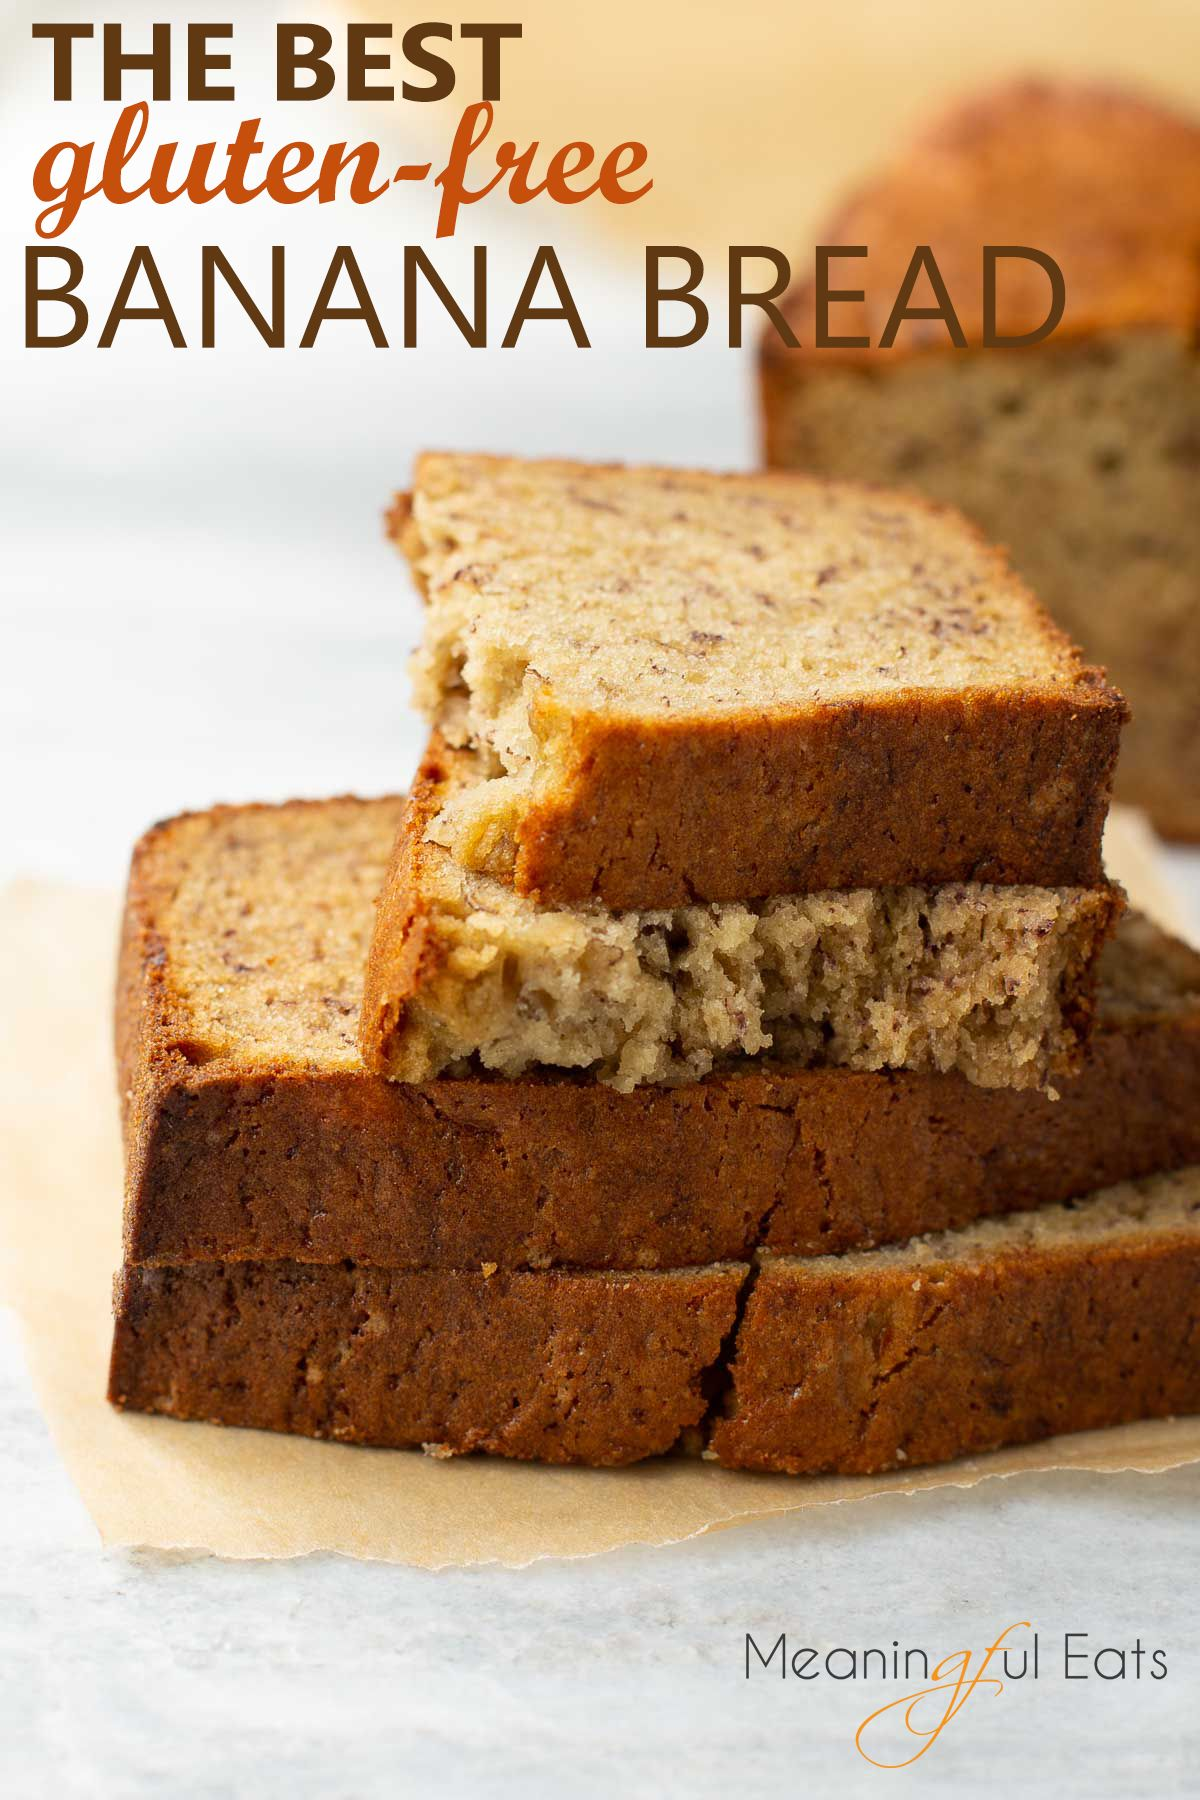 The Best Gluten-Free Banana Bread The Best Gluten-Free Banana Bread! EASY to make with perfect texture and delicious flavor! Sure to become your go-to gluten-free banana bread recipe!